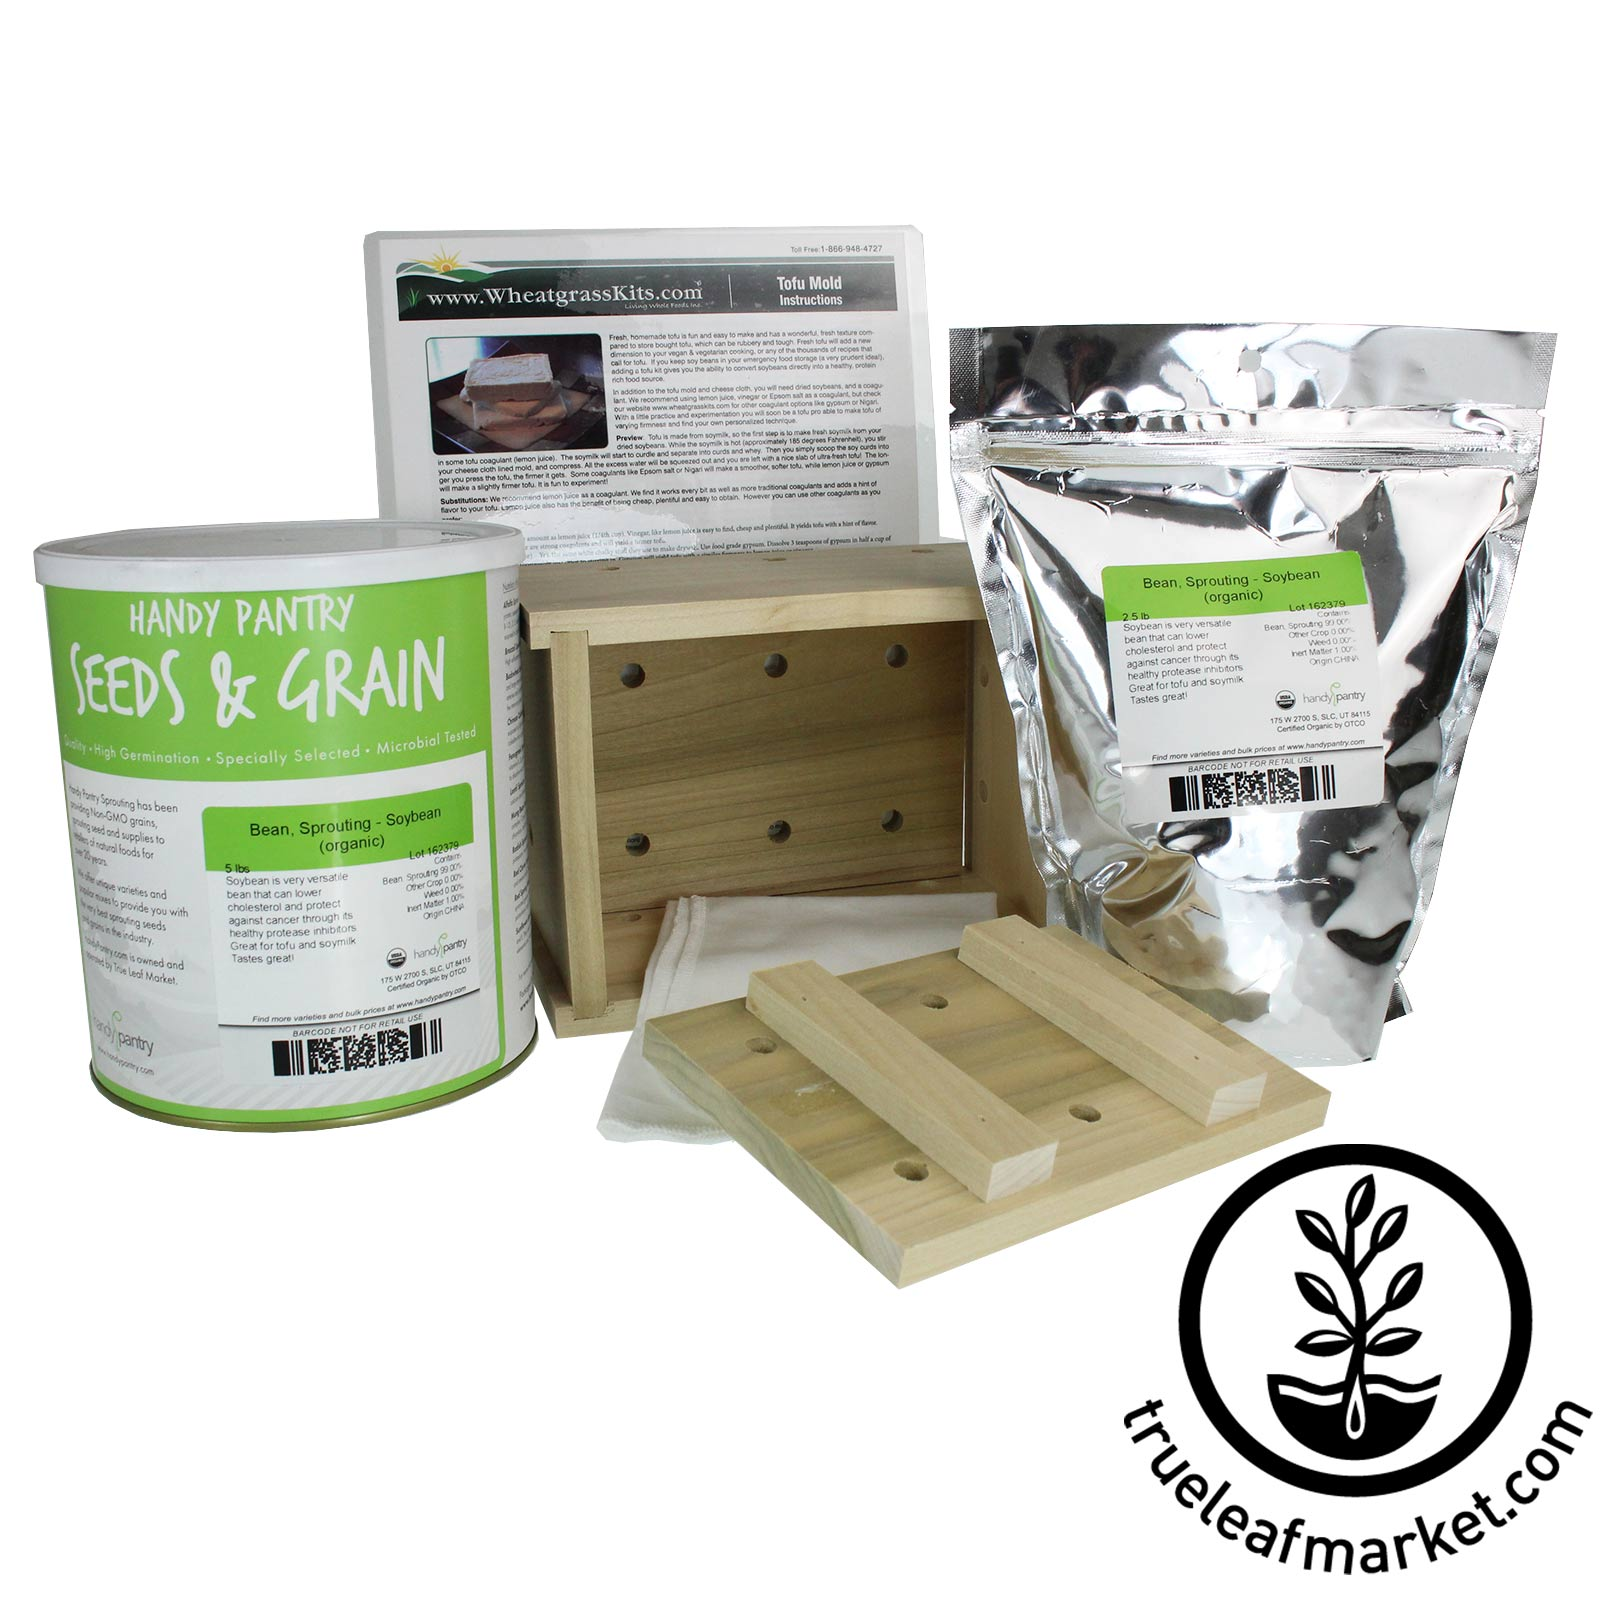 Basic Tofu Making Kit